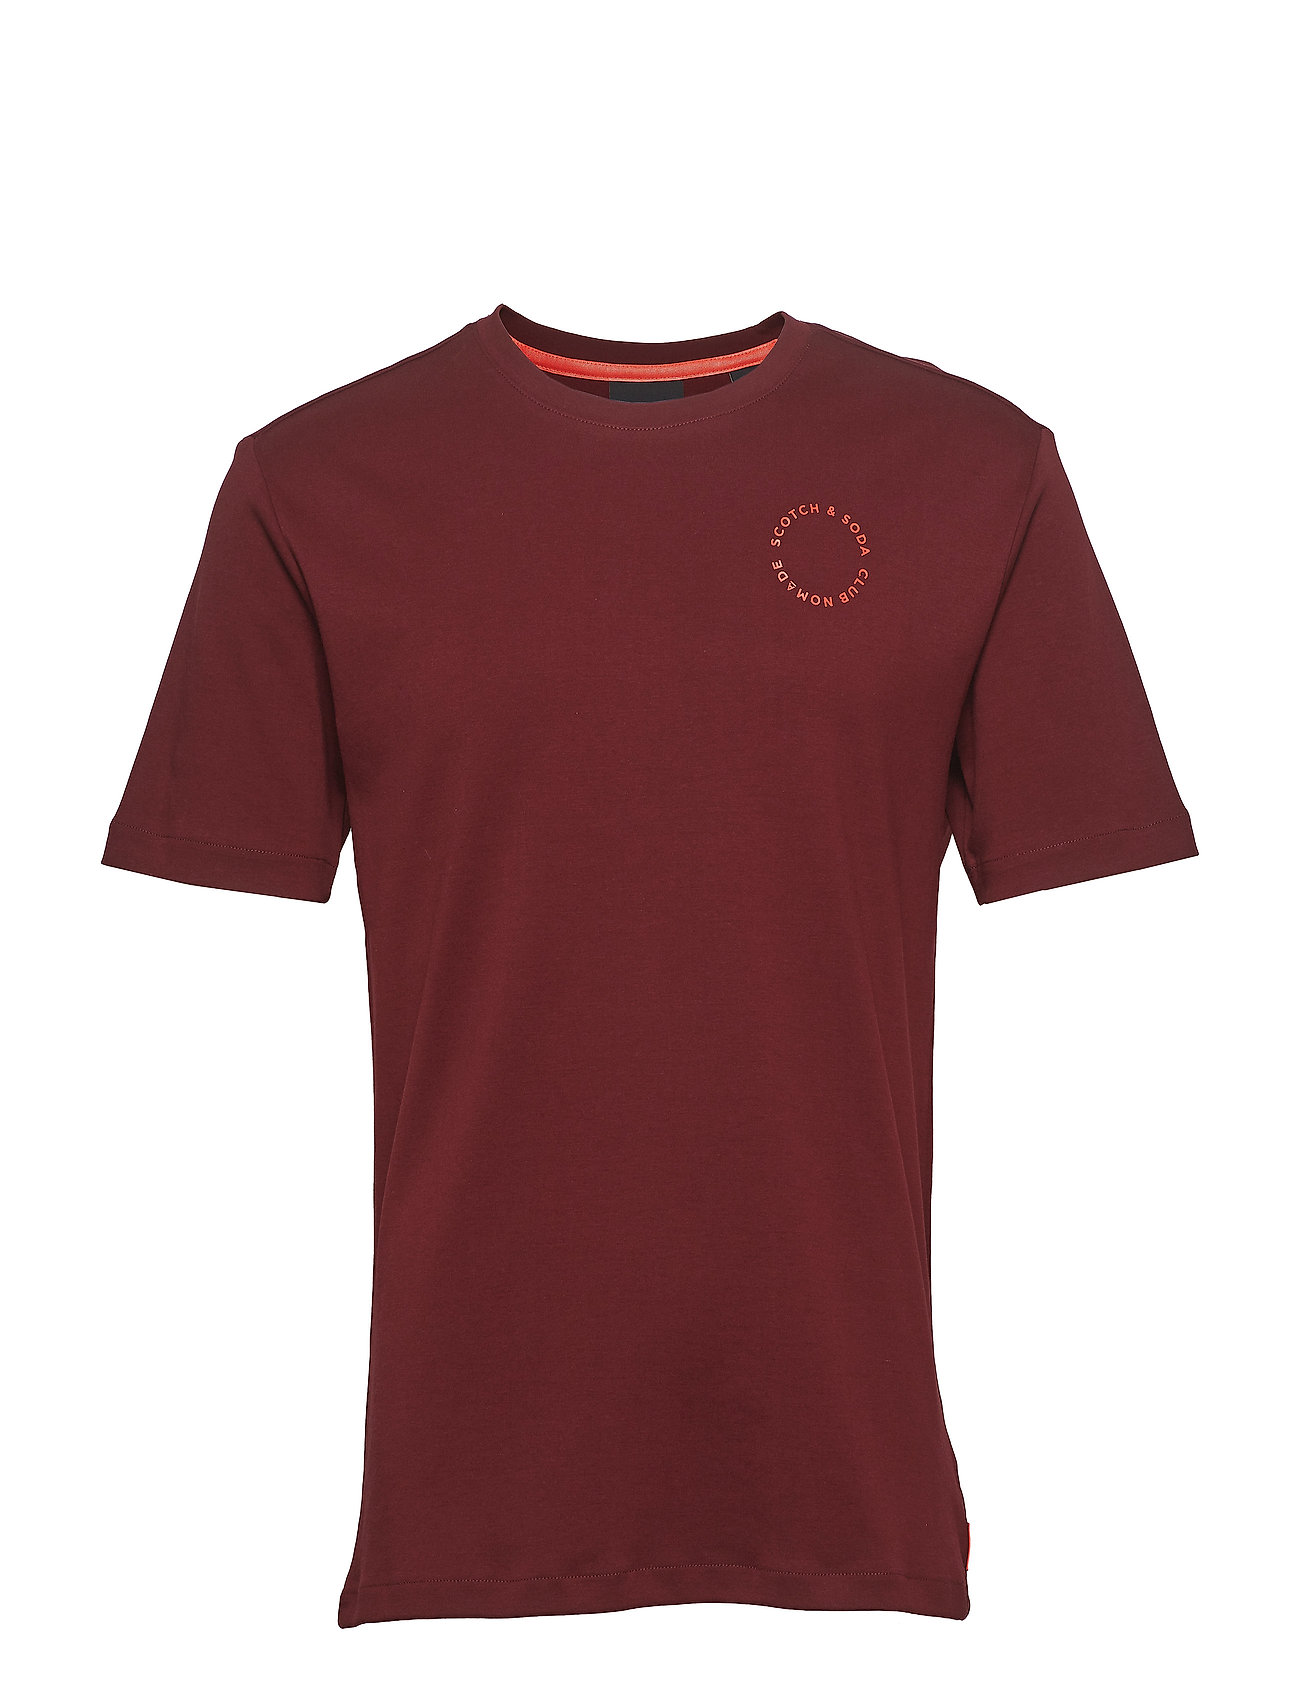 Scotch & Soda Club Nomade s/s tee with logo print - NOMADE RED